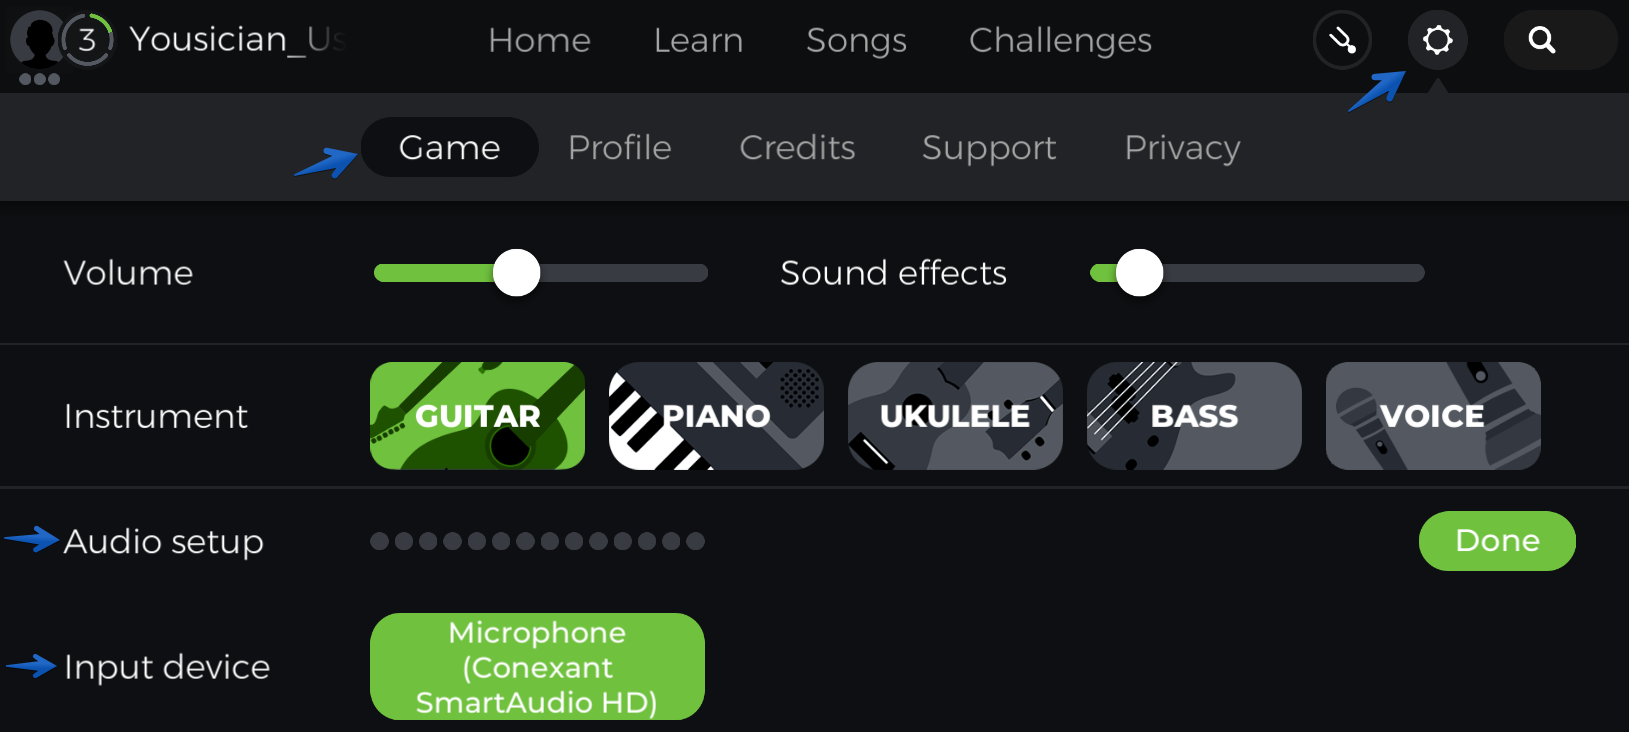 Guitar Sound Recognition Issues Yousician Support